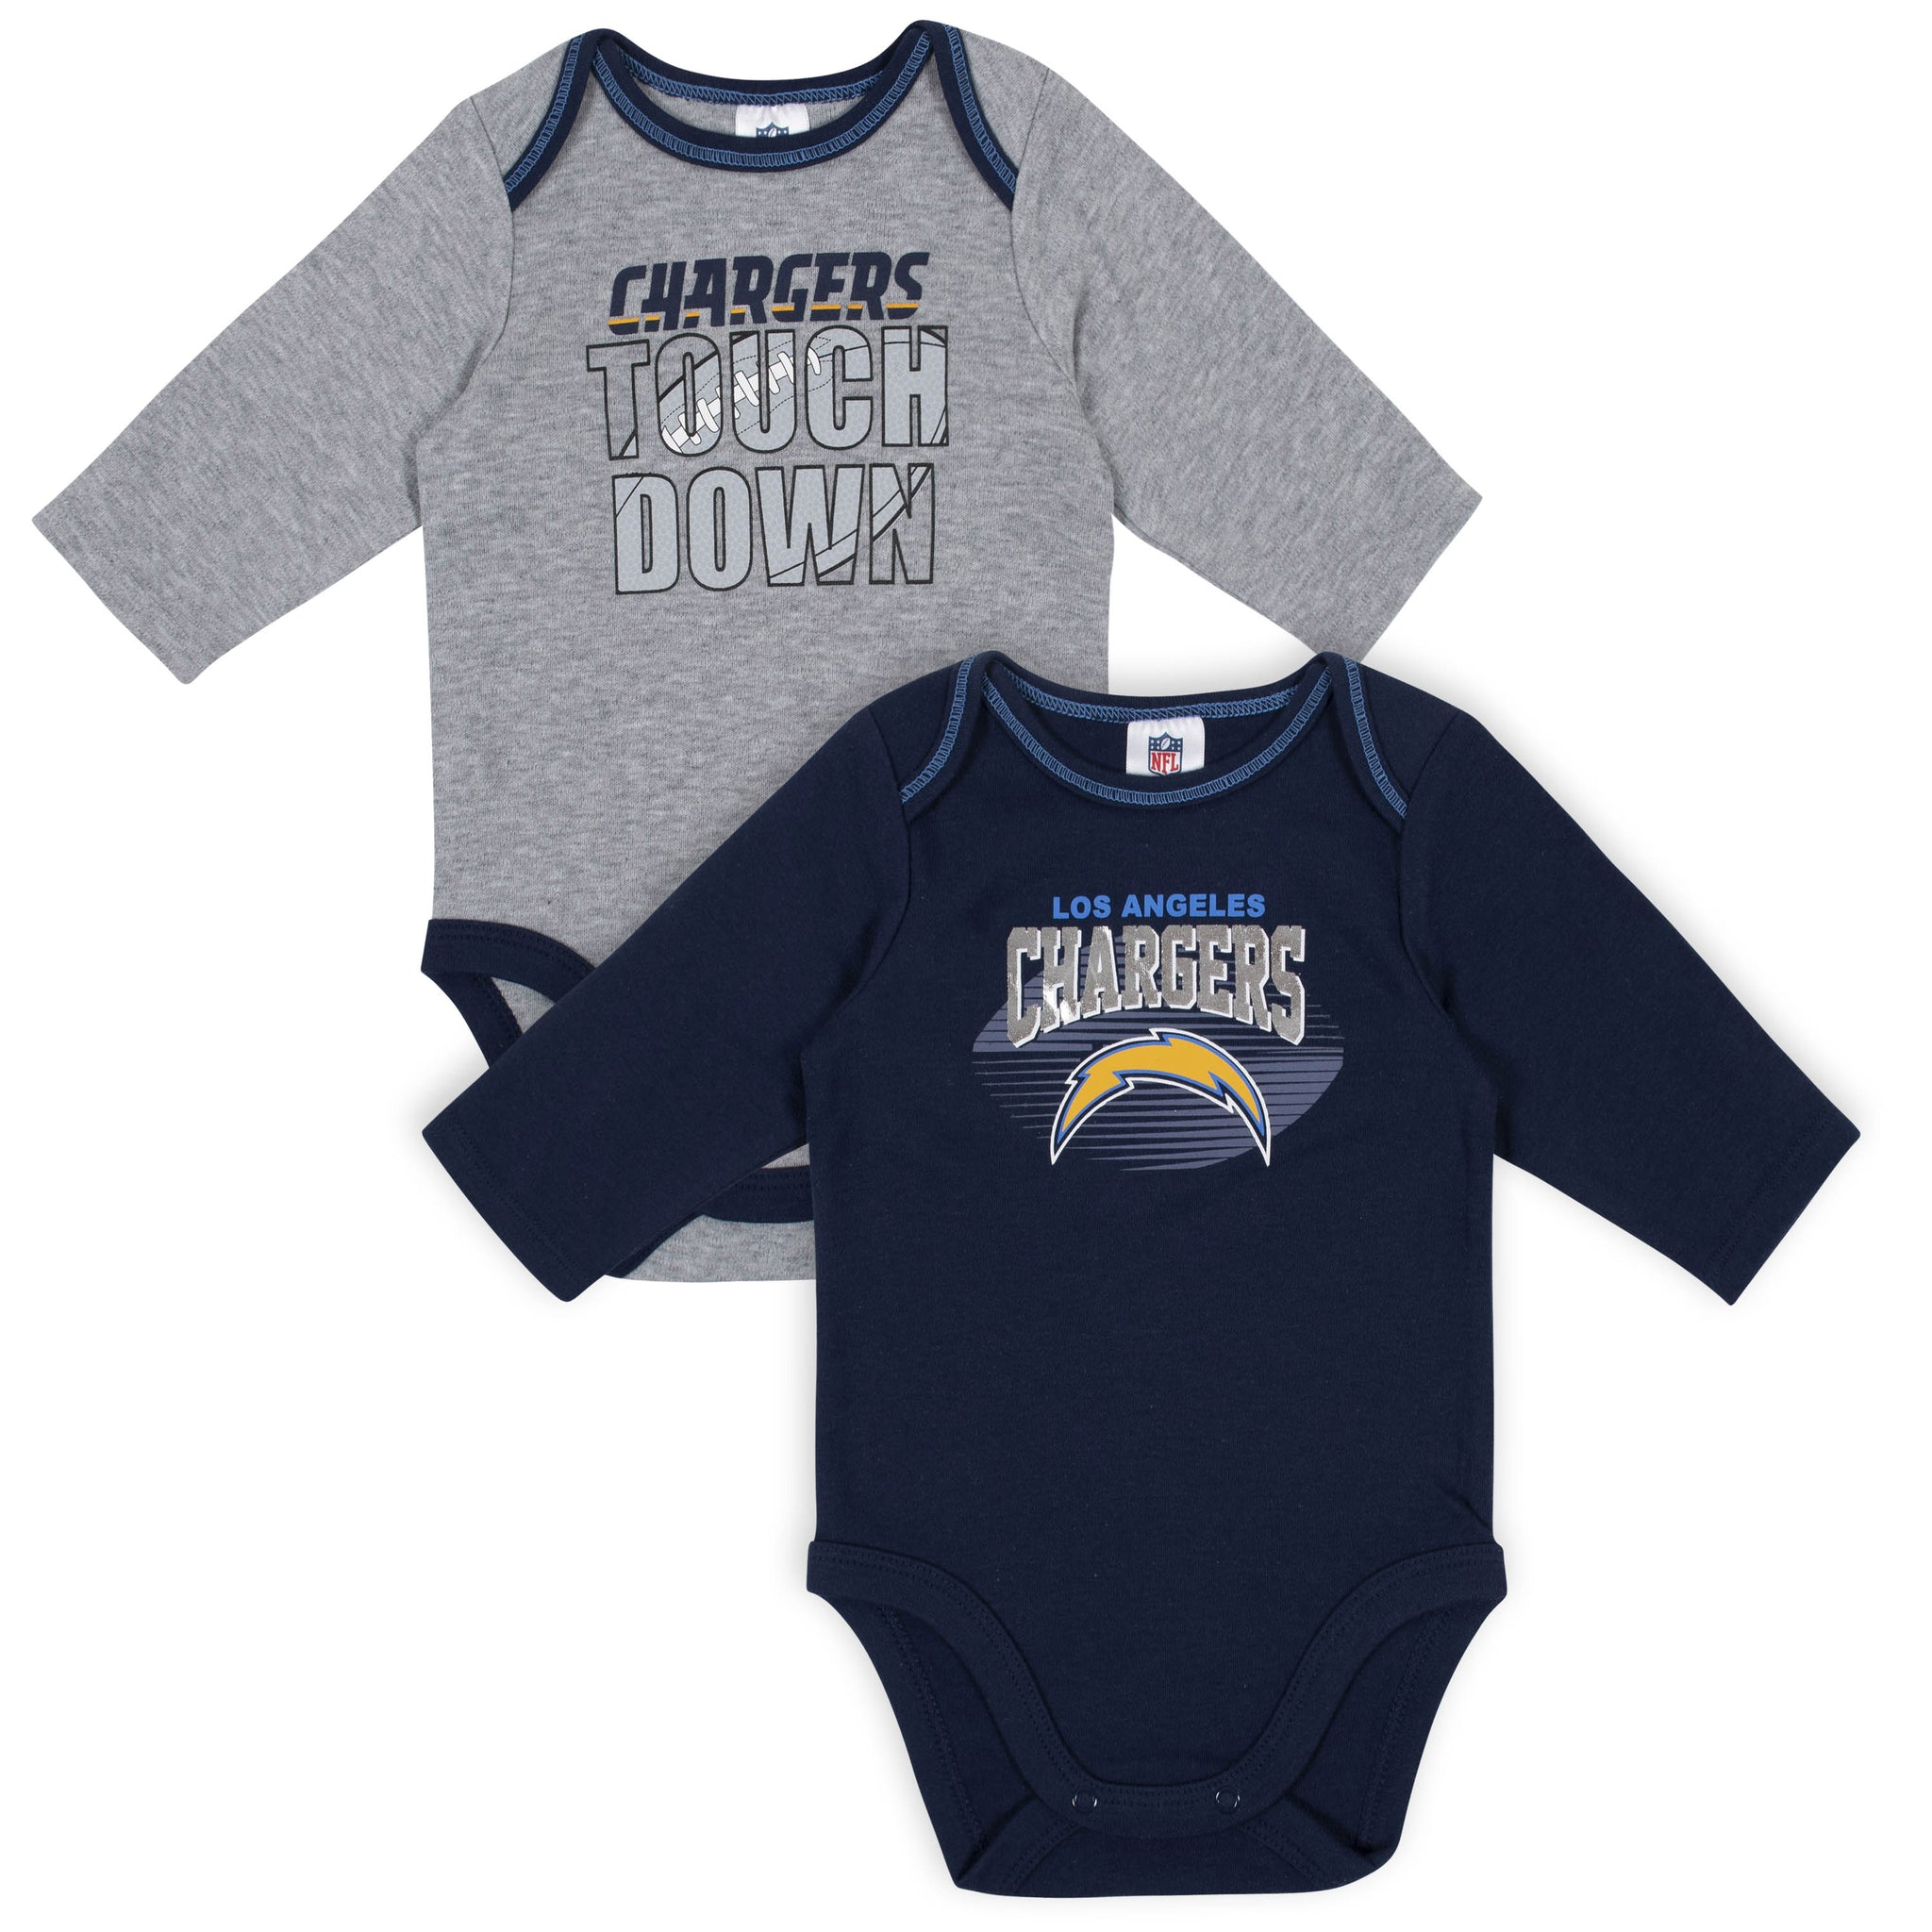 Baby Boys Los Angeles Chargers Long Sleeve Bodysuit, 2-pack -Gerber Childrenswear